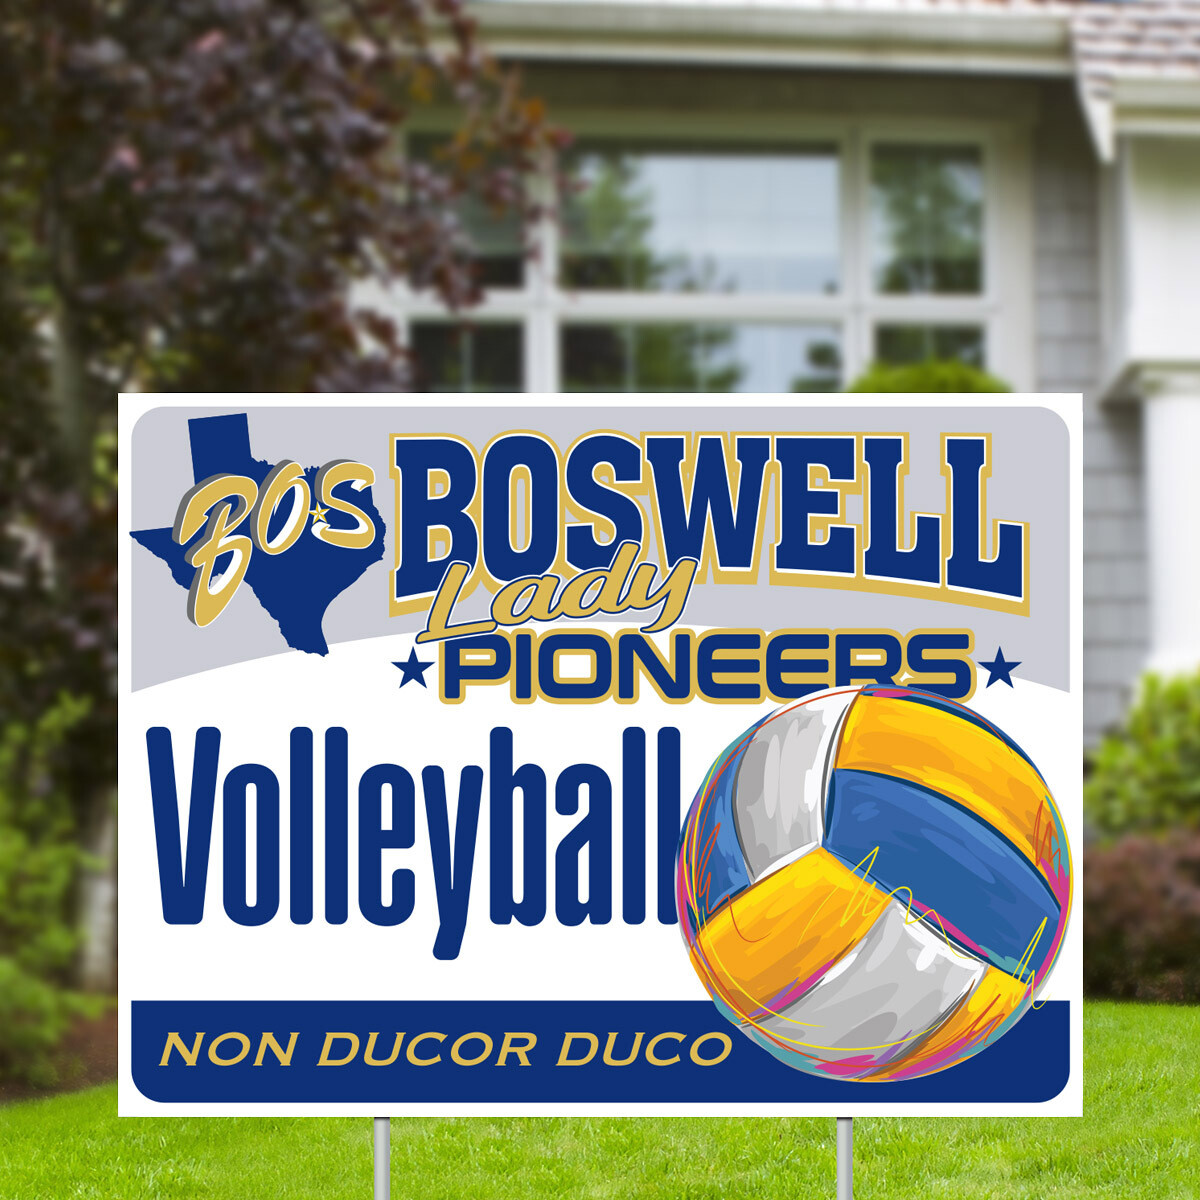 Boswell Lady Pioneers Volleyball Yard Sign